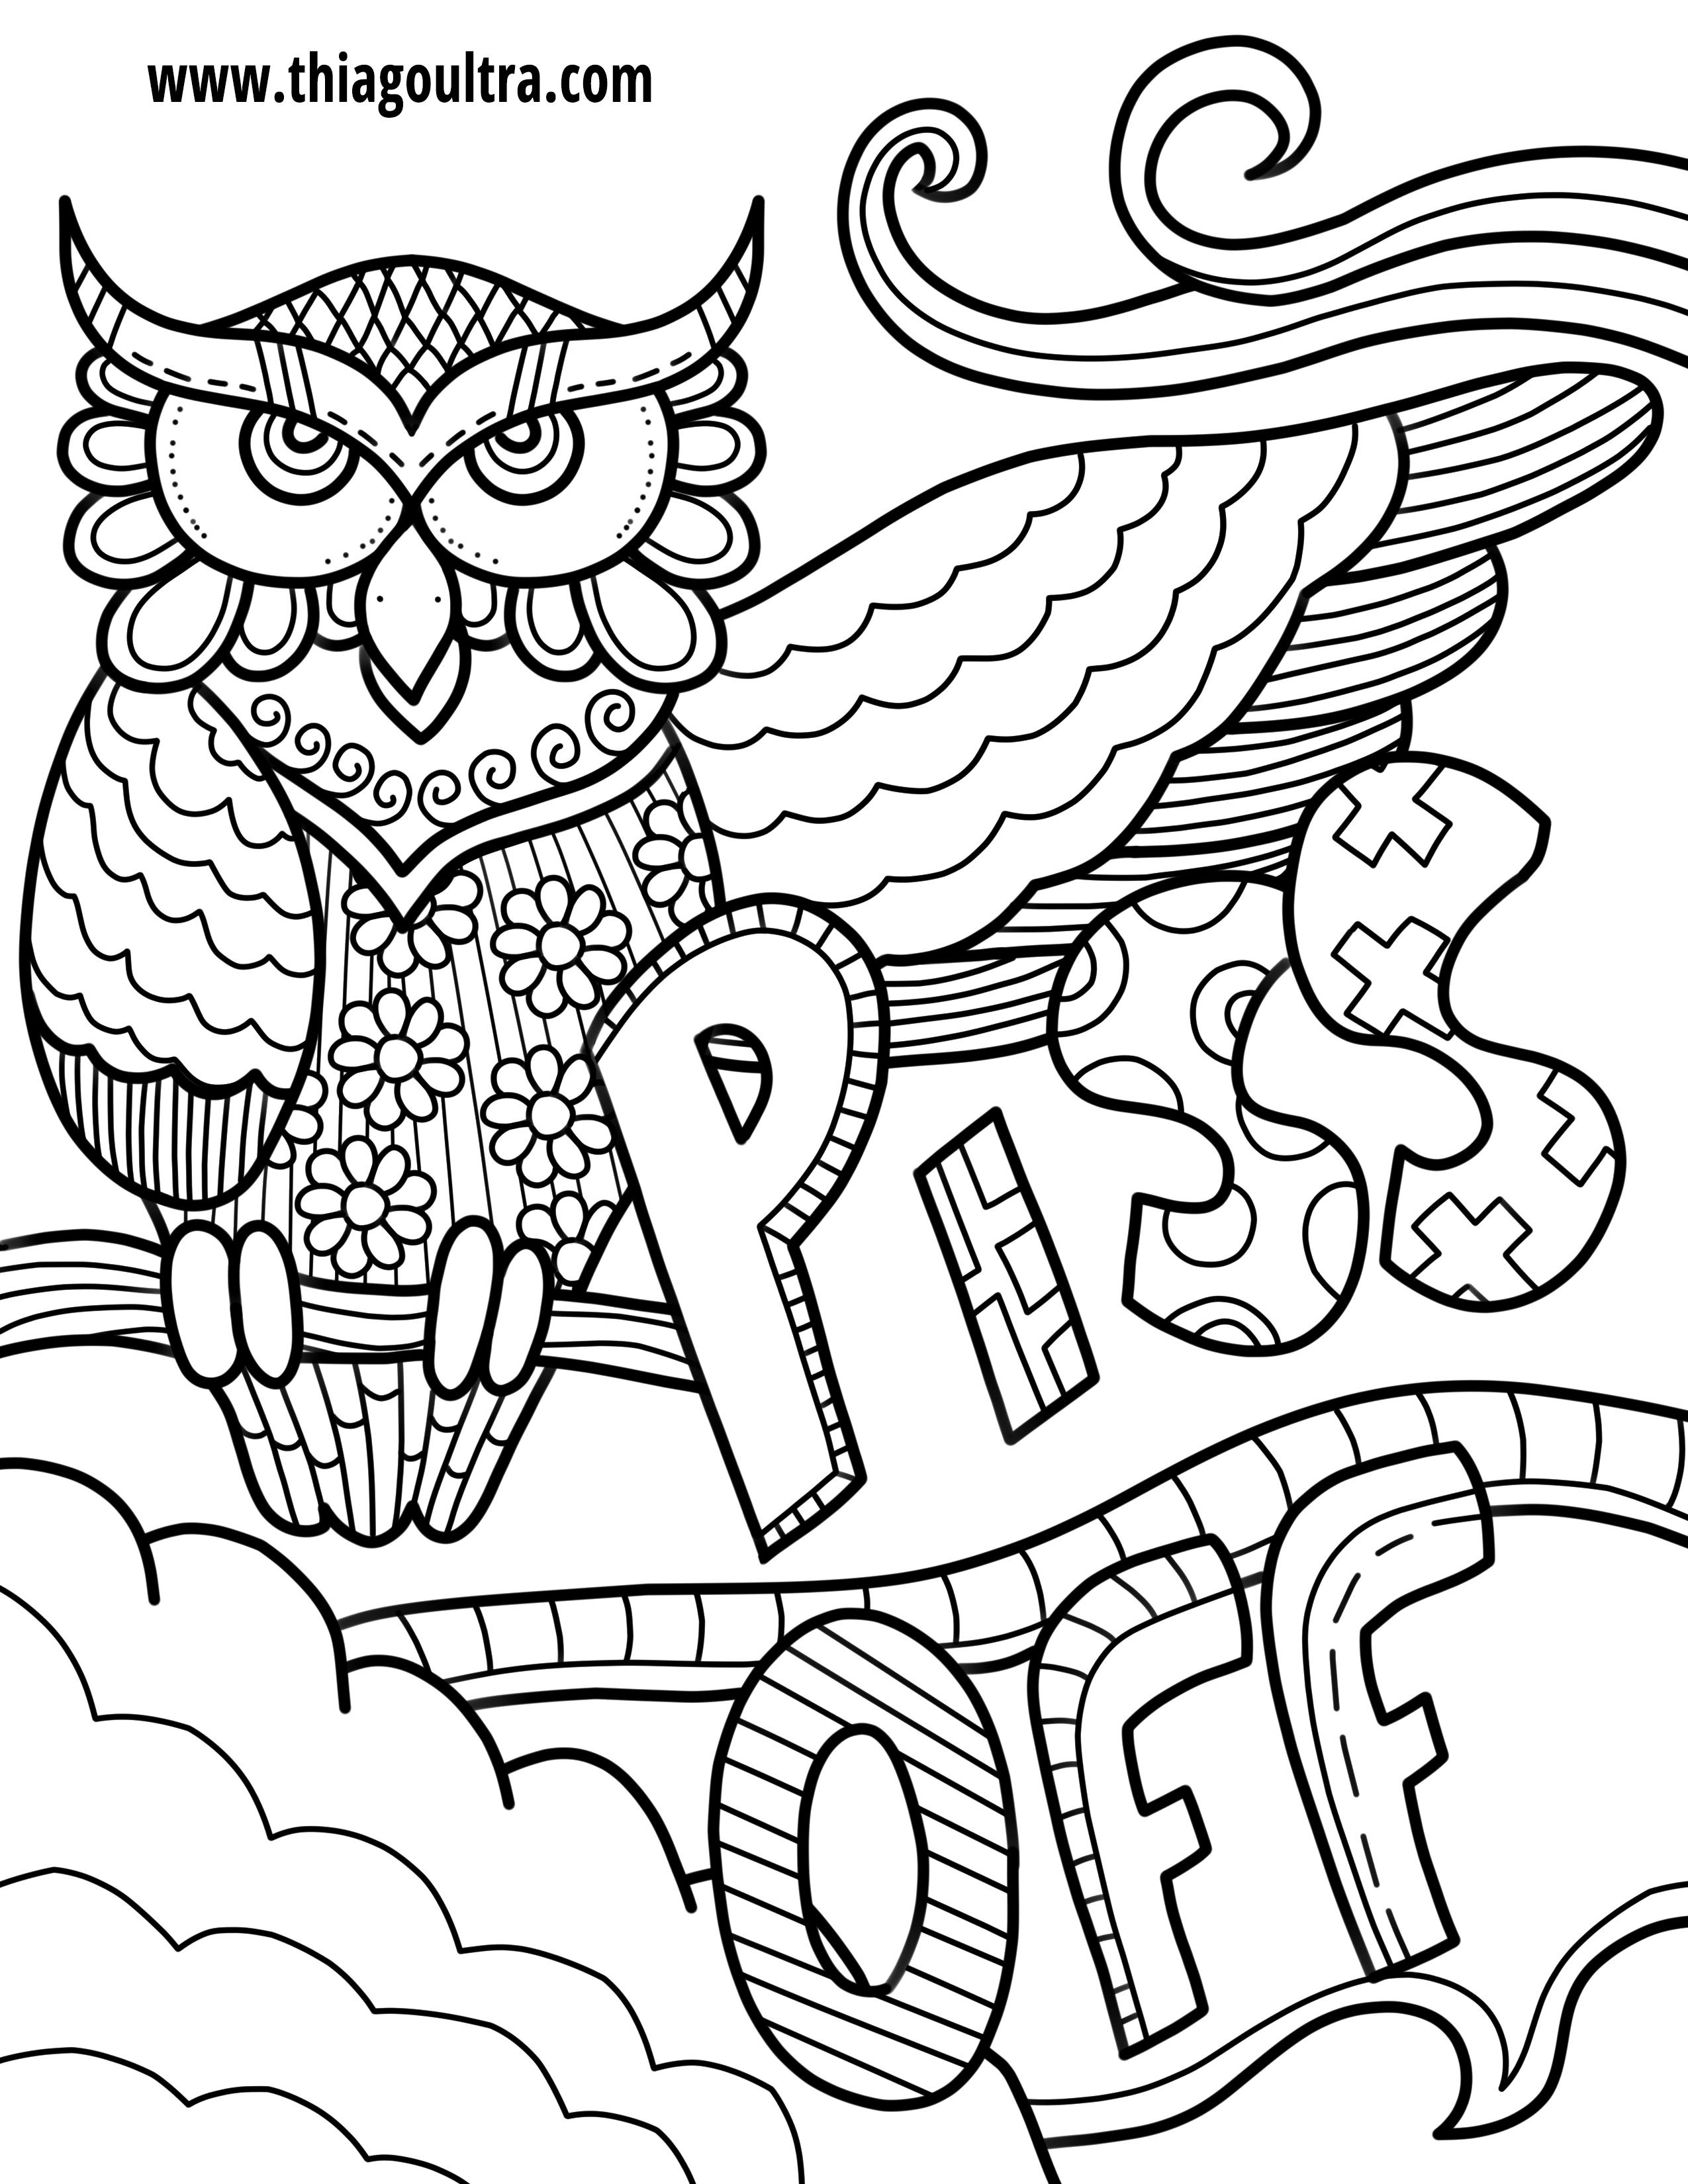 Challenge Free Printable Coloring Pages For Adults Only Swear Words - Free Printable Coloring Pages For Adults Swear Words